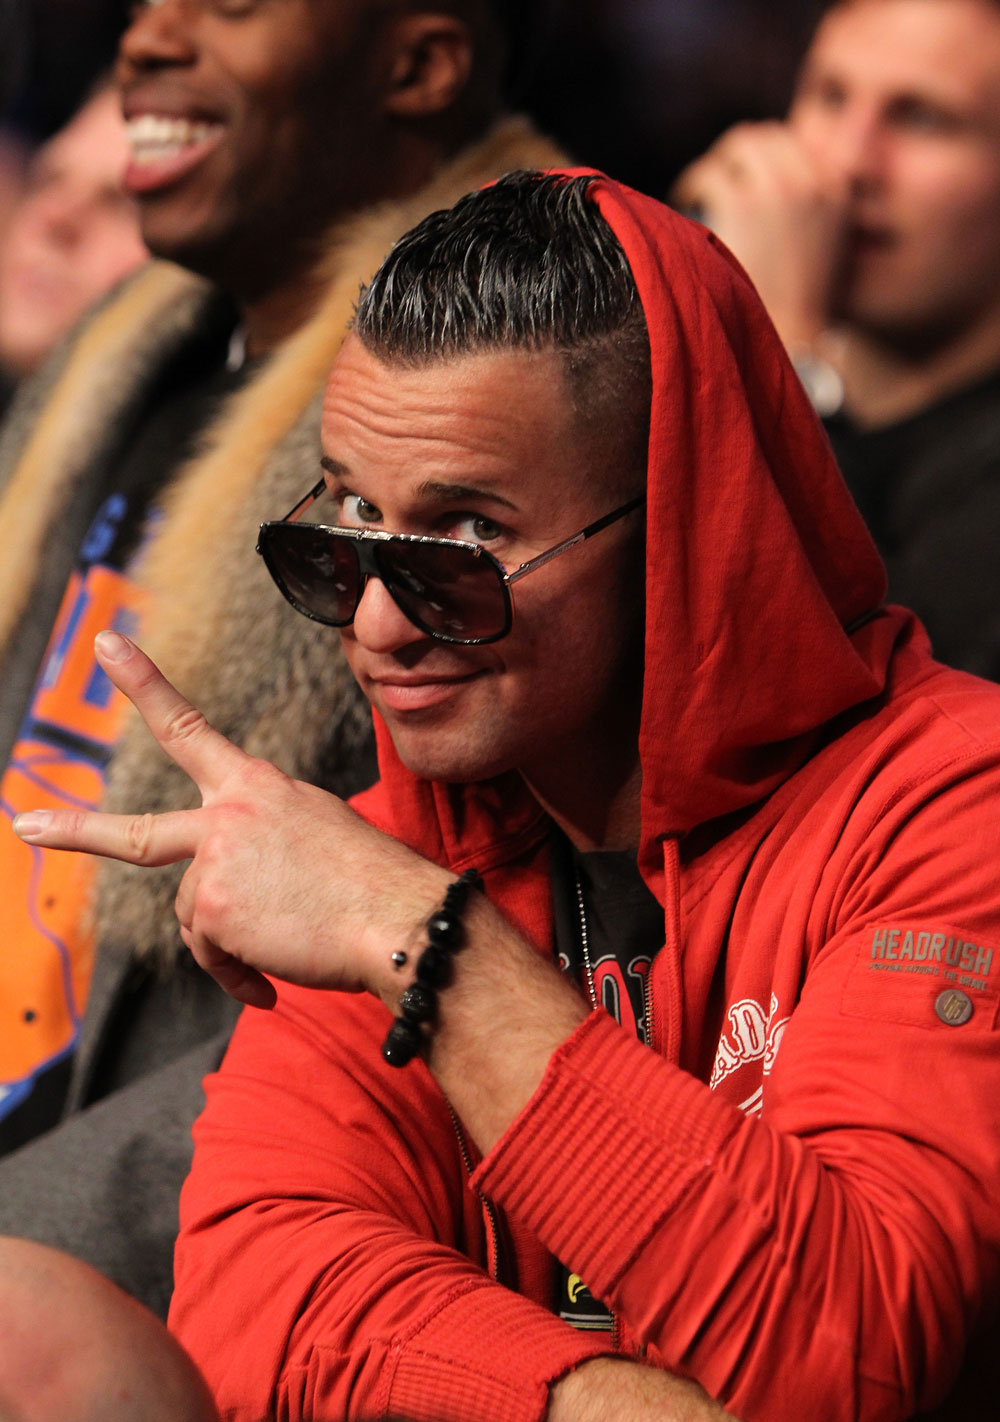 TORONTO, ON - DECEMBER 10:  Television personality &quot;The Situation&quot; Michael Sorrentino attends the UFC 140 event at Air Canada Centre on December 10, 2011 in Toronto, Ontario, Canada.  (Photo by Josh Hedges/Zuffa LLC/Zuffa LLC via Getty Images)